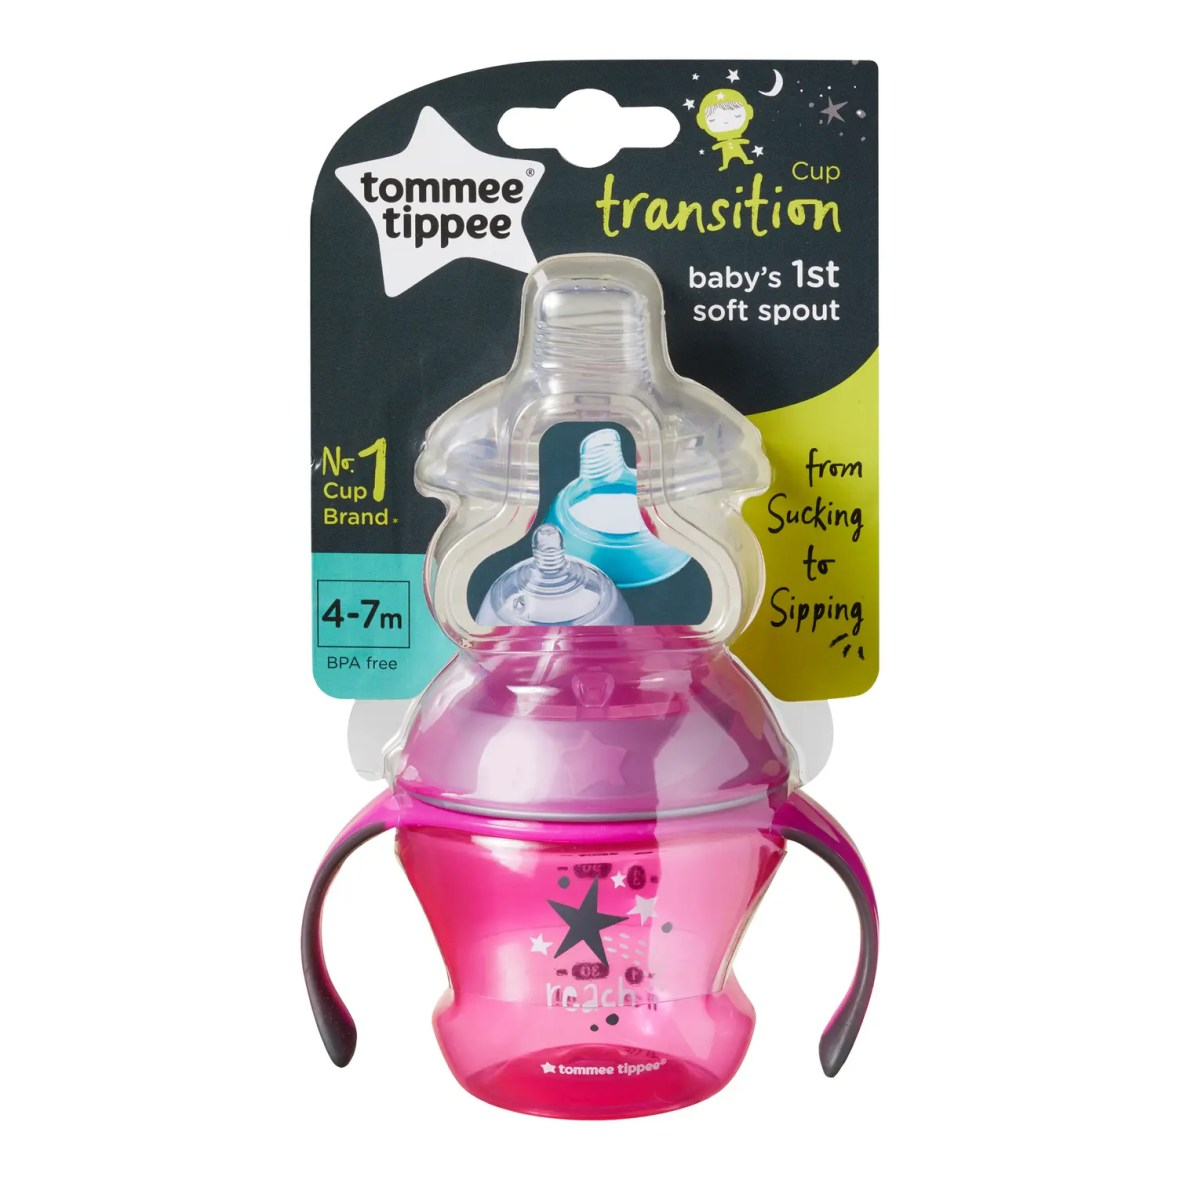 Baby-products-supplier-of-Tommee-Tippee-Transition-Sippee-Trainer-Cup-4-7m-TT-FED03-6